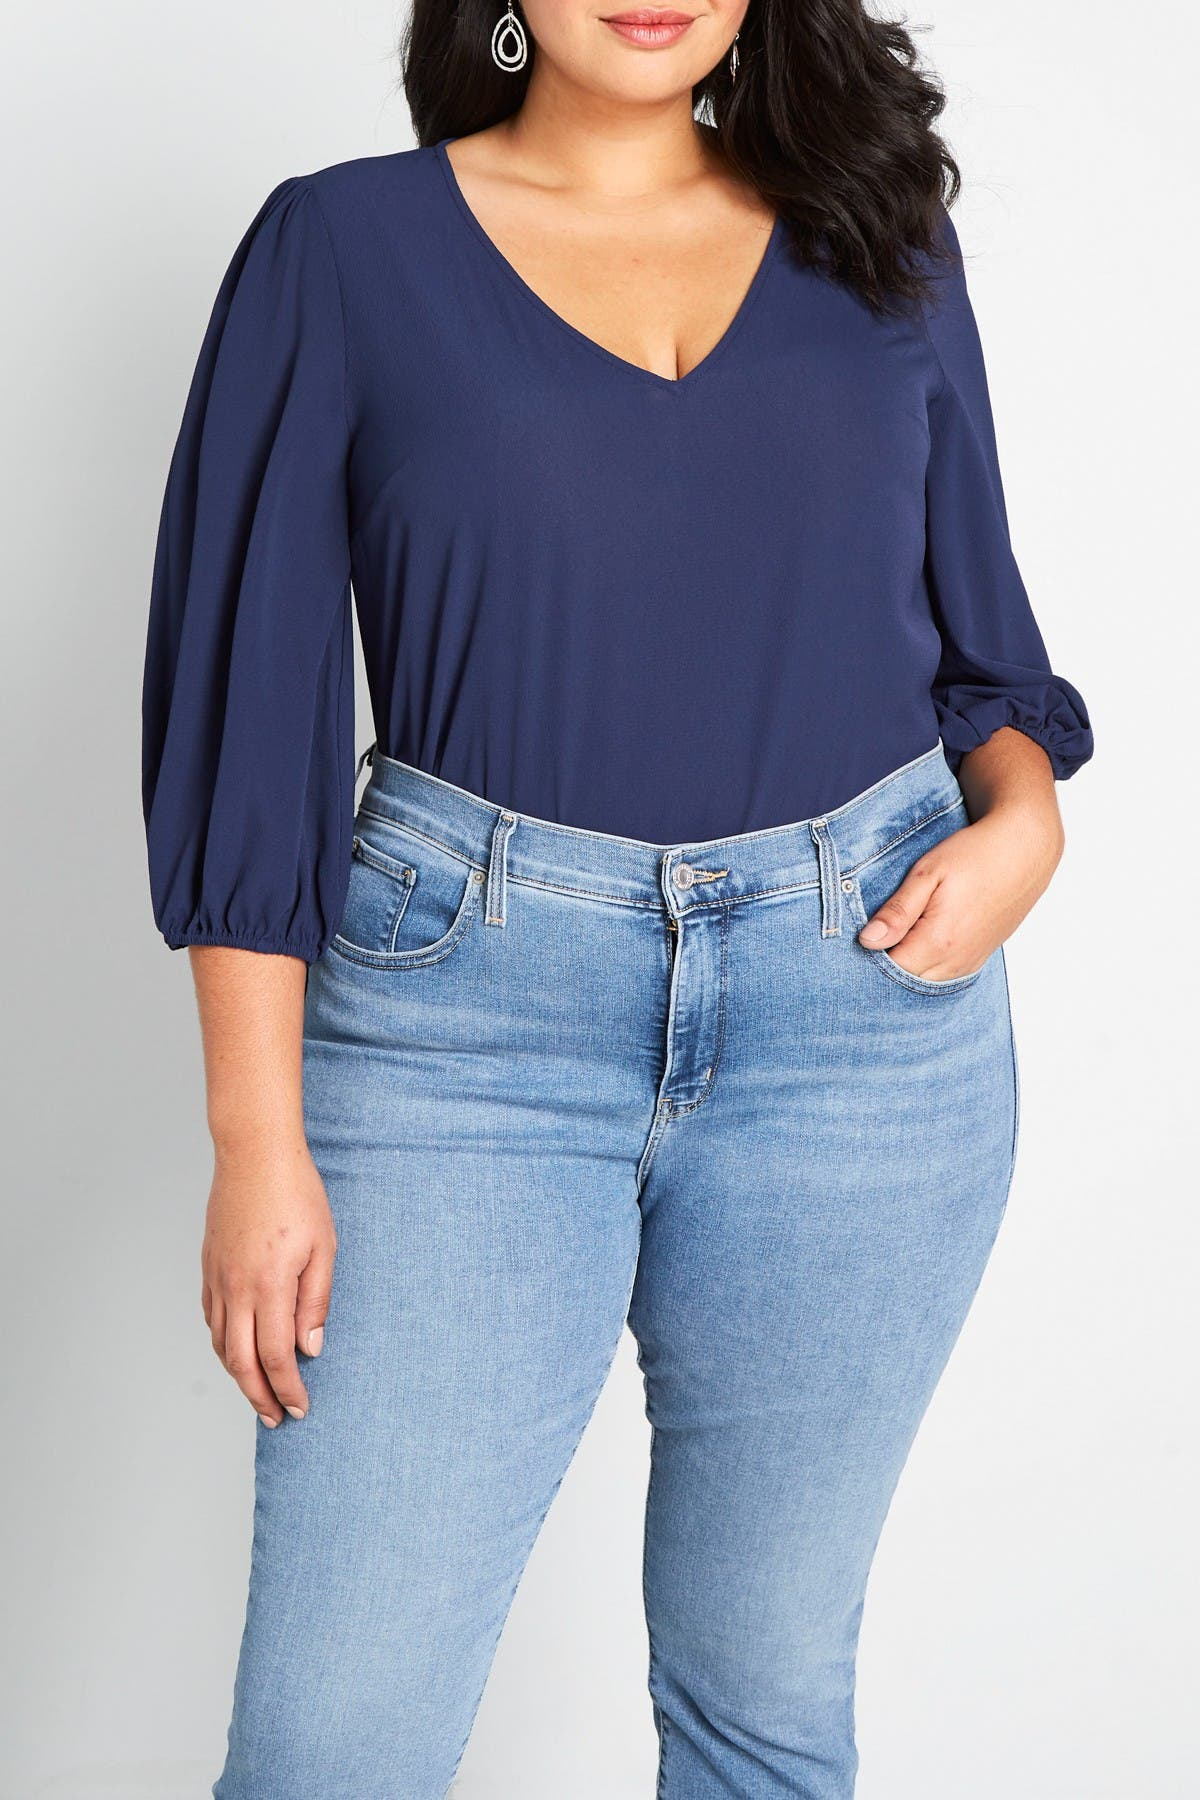 Image of MODCLOTH Certainly Essential V-Neck Blouse